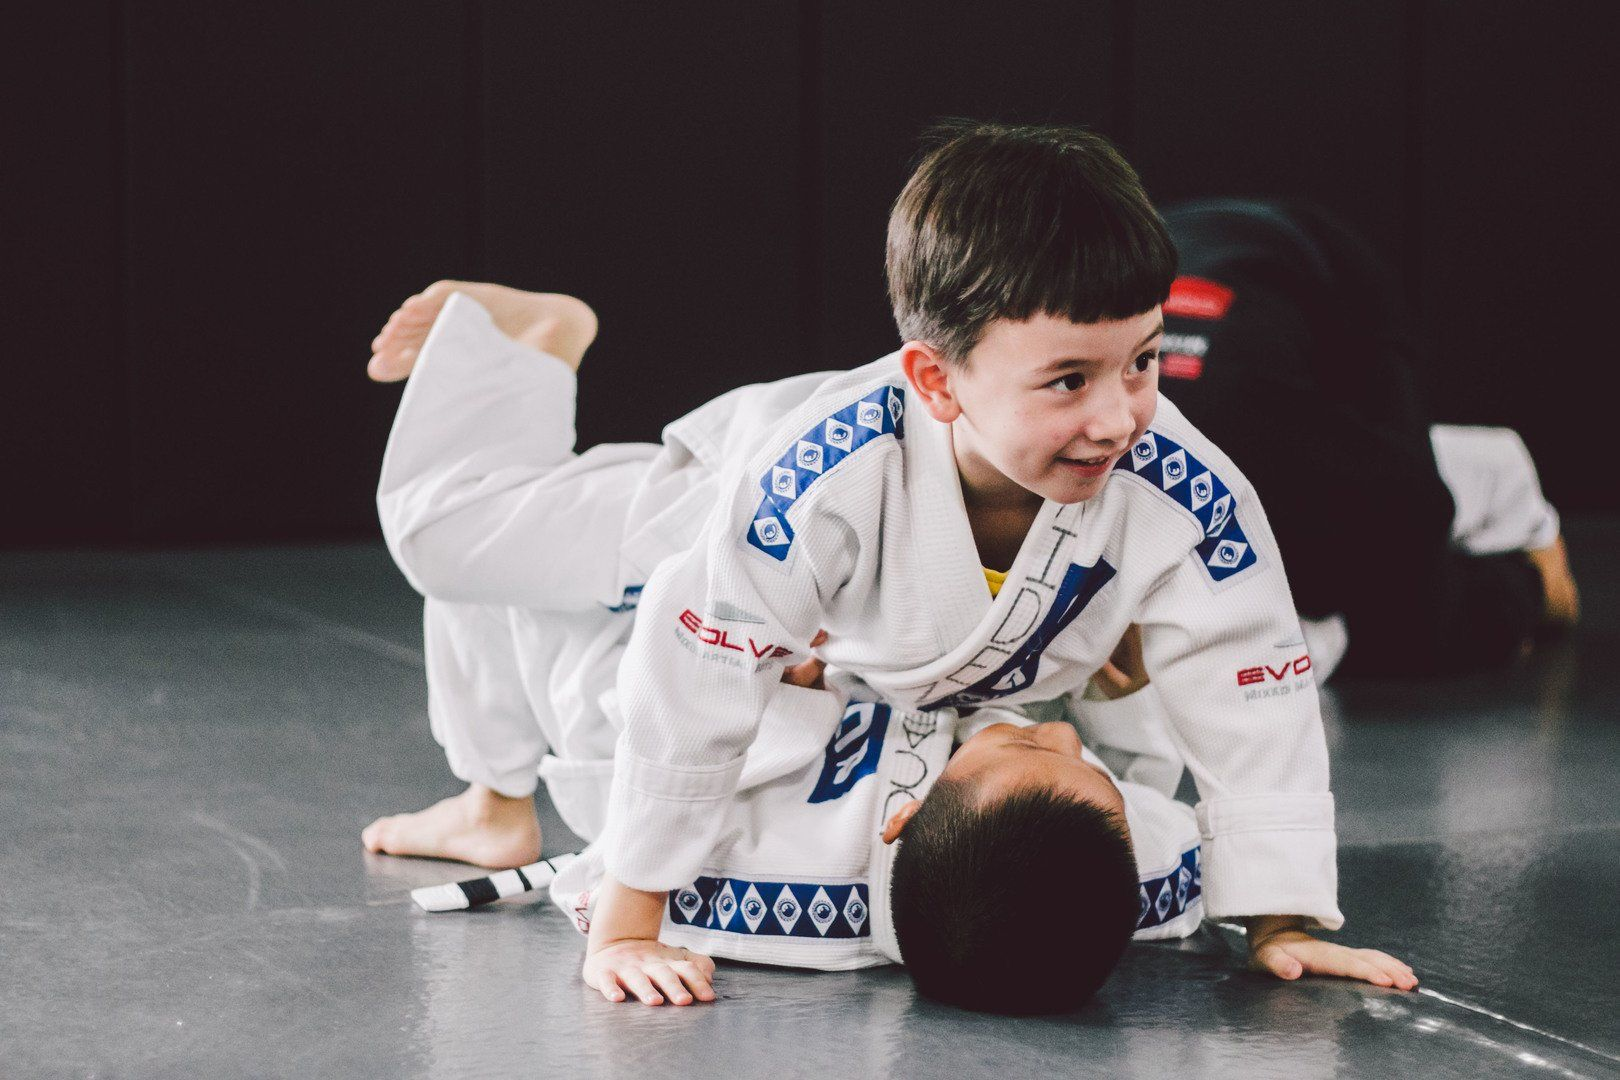 BJJ is a great way to bully-proof your child.